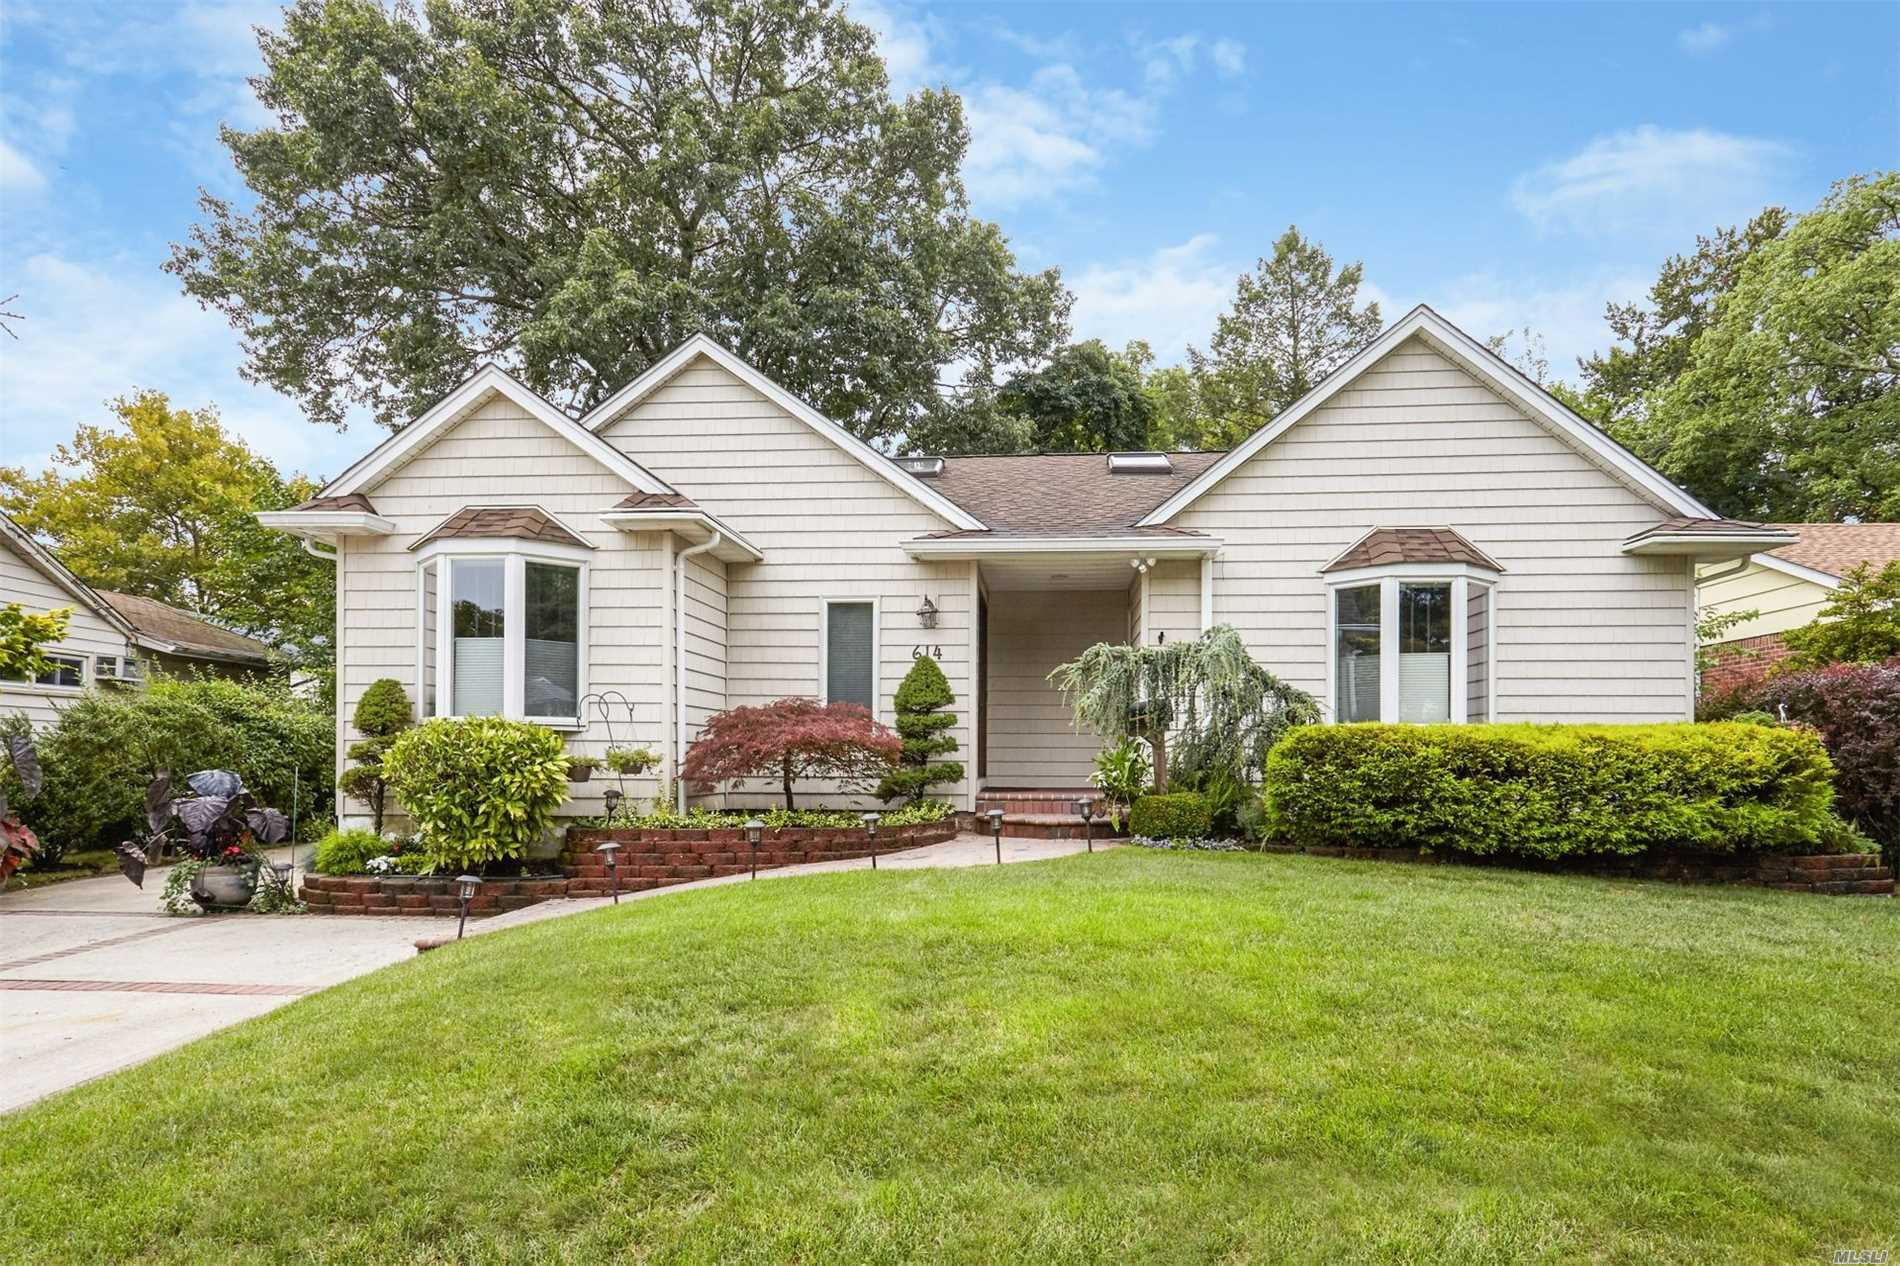 Like New! Stunning 3Br 3Bath Exp.Barnum Wood's Ranch Is The Cream Puff You've Been Looking For! Gourmet Ext Eik Has Cherry Cabinets, Granite, Gleaming Ss Appls, Double Wall Oven & Sinks. Designer Baths. Eh & 2 Bths W/Heated Flrs. Gorgeous Cath Skylit Great Room W/Heatilator Fireplace Pella Slider To Deck & Outside Entertaining! Lovely Lower Level Family Room, Full Bth, Wood-Burning Stove, Cedar Closet. Updated Siding, Roof, Windows, Cac. Central Vac, Hi-Hat Lighting, 200 Amps & Igs. Low Taxes!